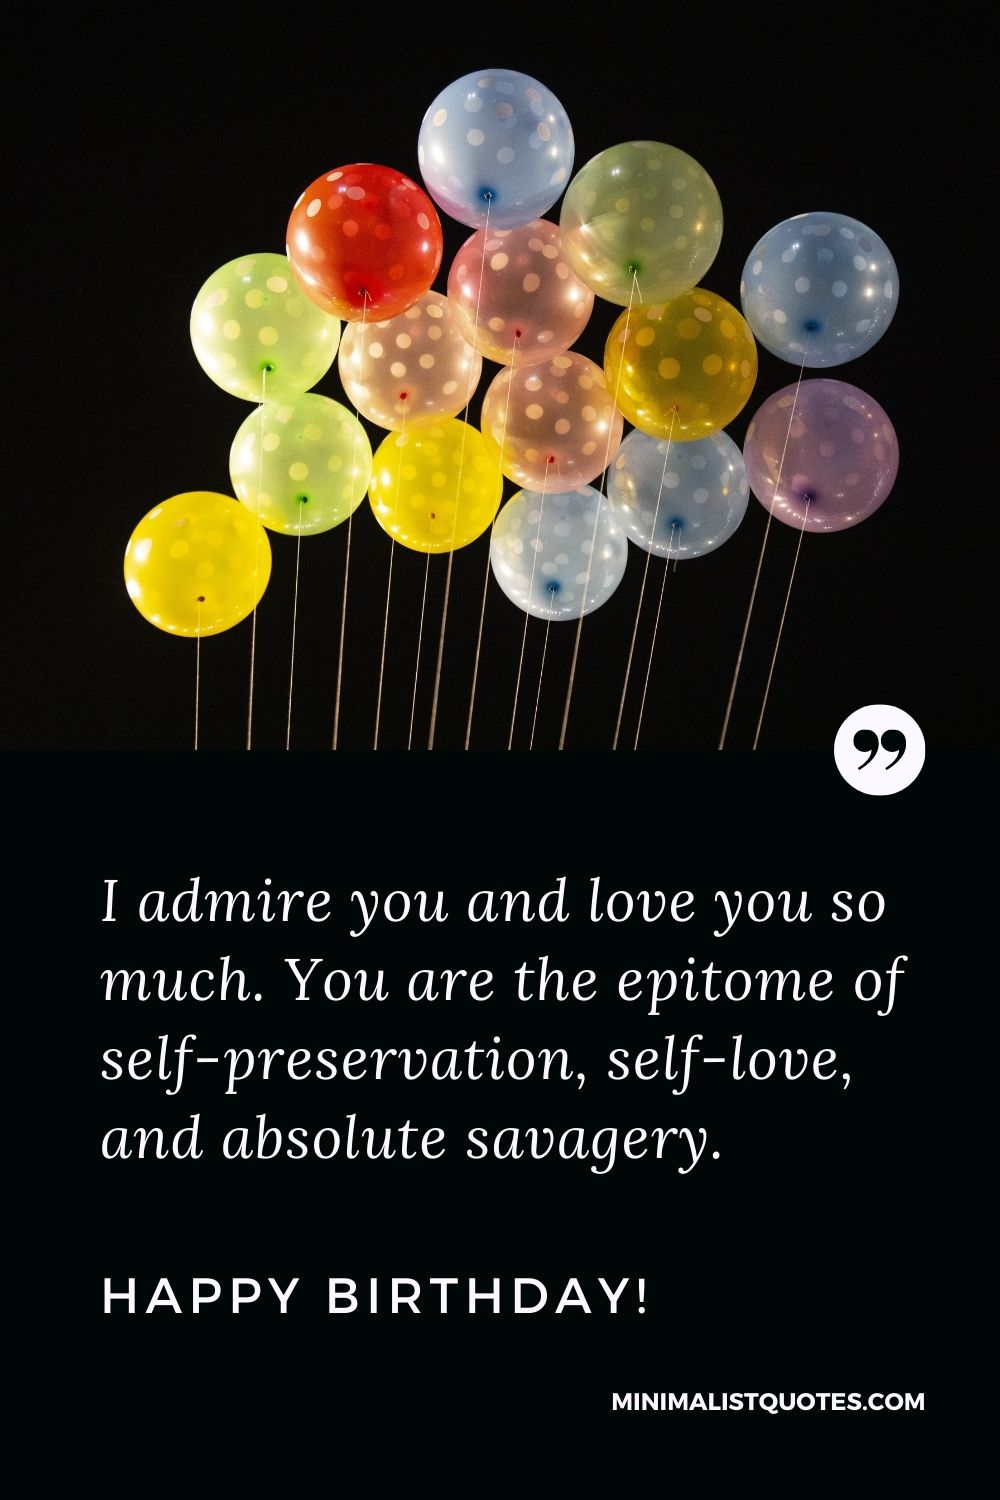 Birthday Quote, Wish & Message With Image: I admire you and love you so much. You are the epitome of self-preservation, self-love, and absolute savagery. Happy Birthday!